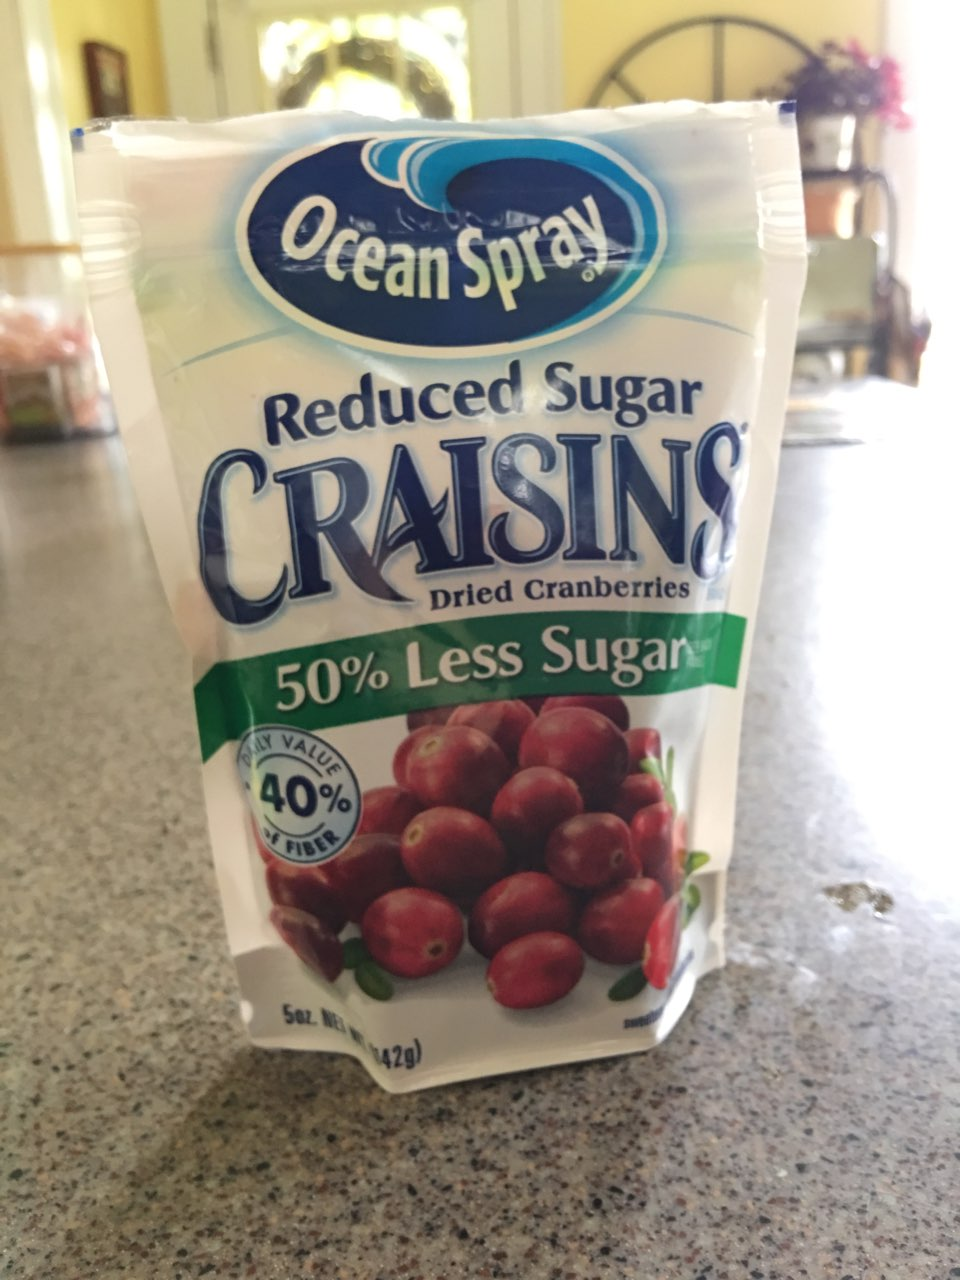 Ocean Spray Craisins, Original, Reduced Sugar: Calories ...